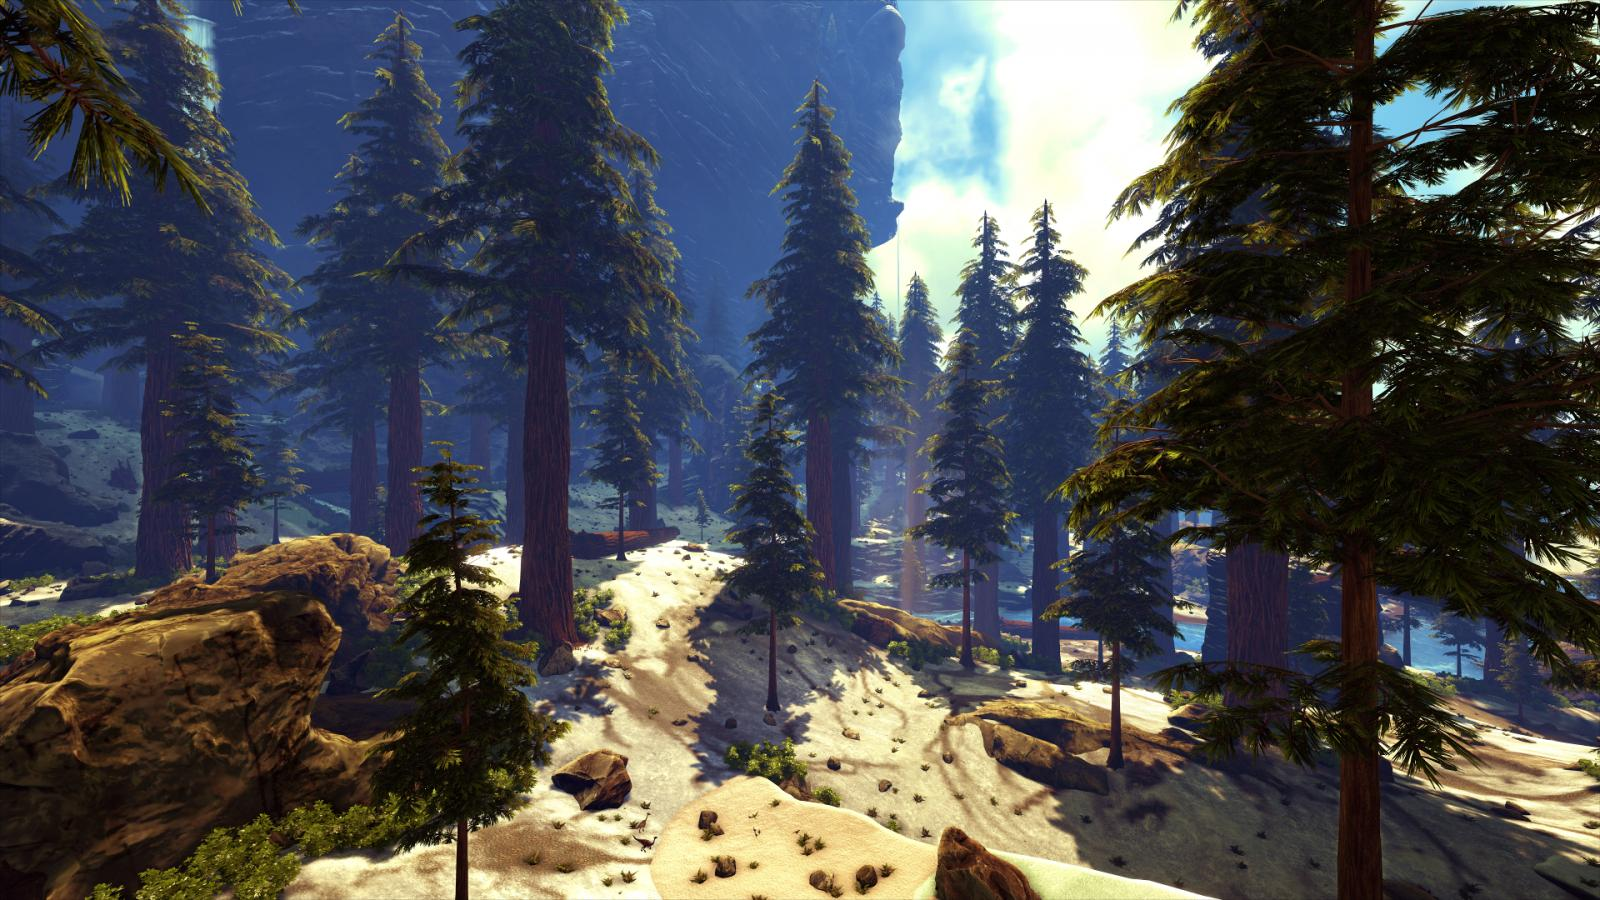 large.5882e6e8f3738_EXFIB0-WinterInTheRedwood-SuperResolutionsta.jpg